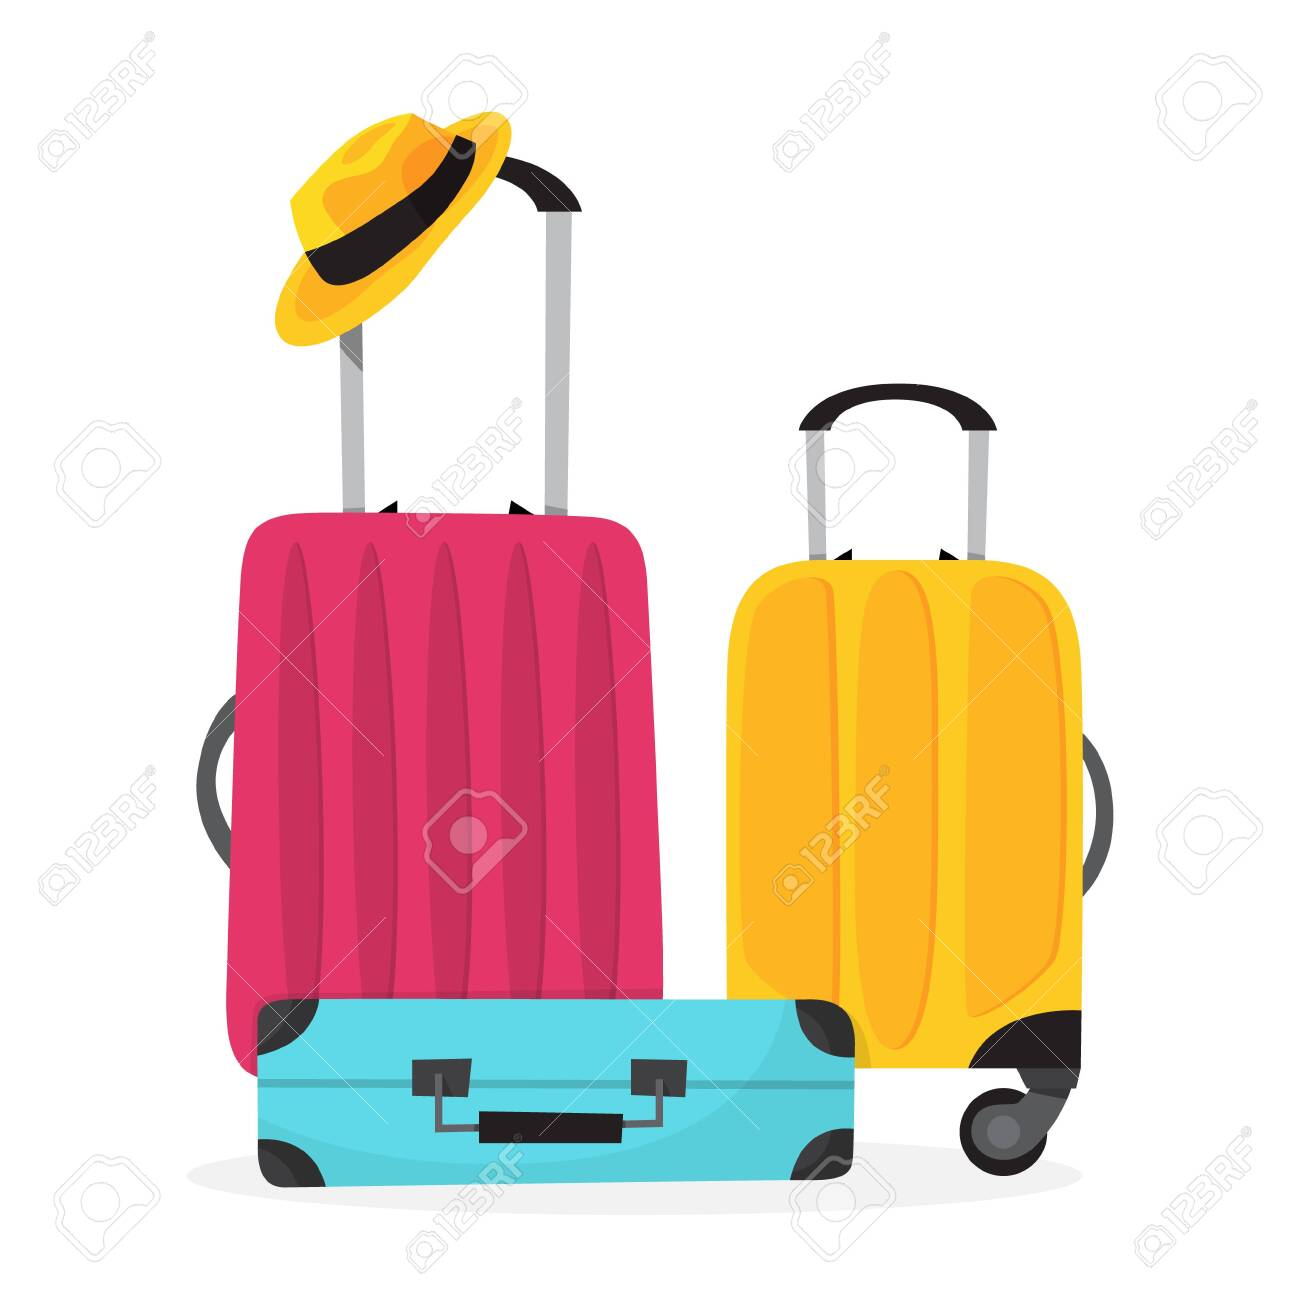 Baggage for travel. Big suitcase for a journey and adventure. Isolated vector illustration in cartoon style - 124129893